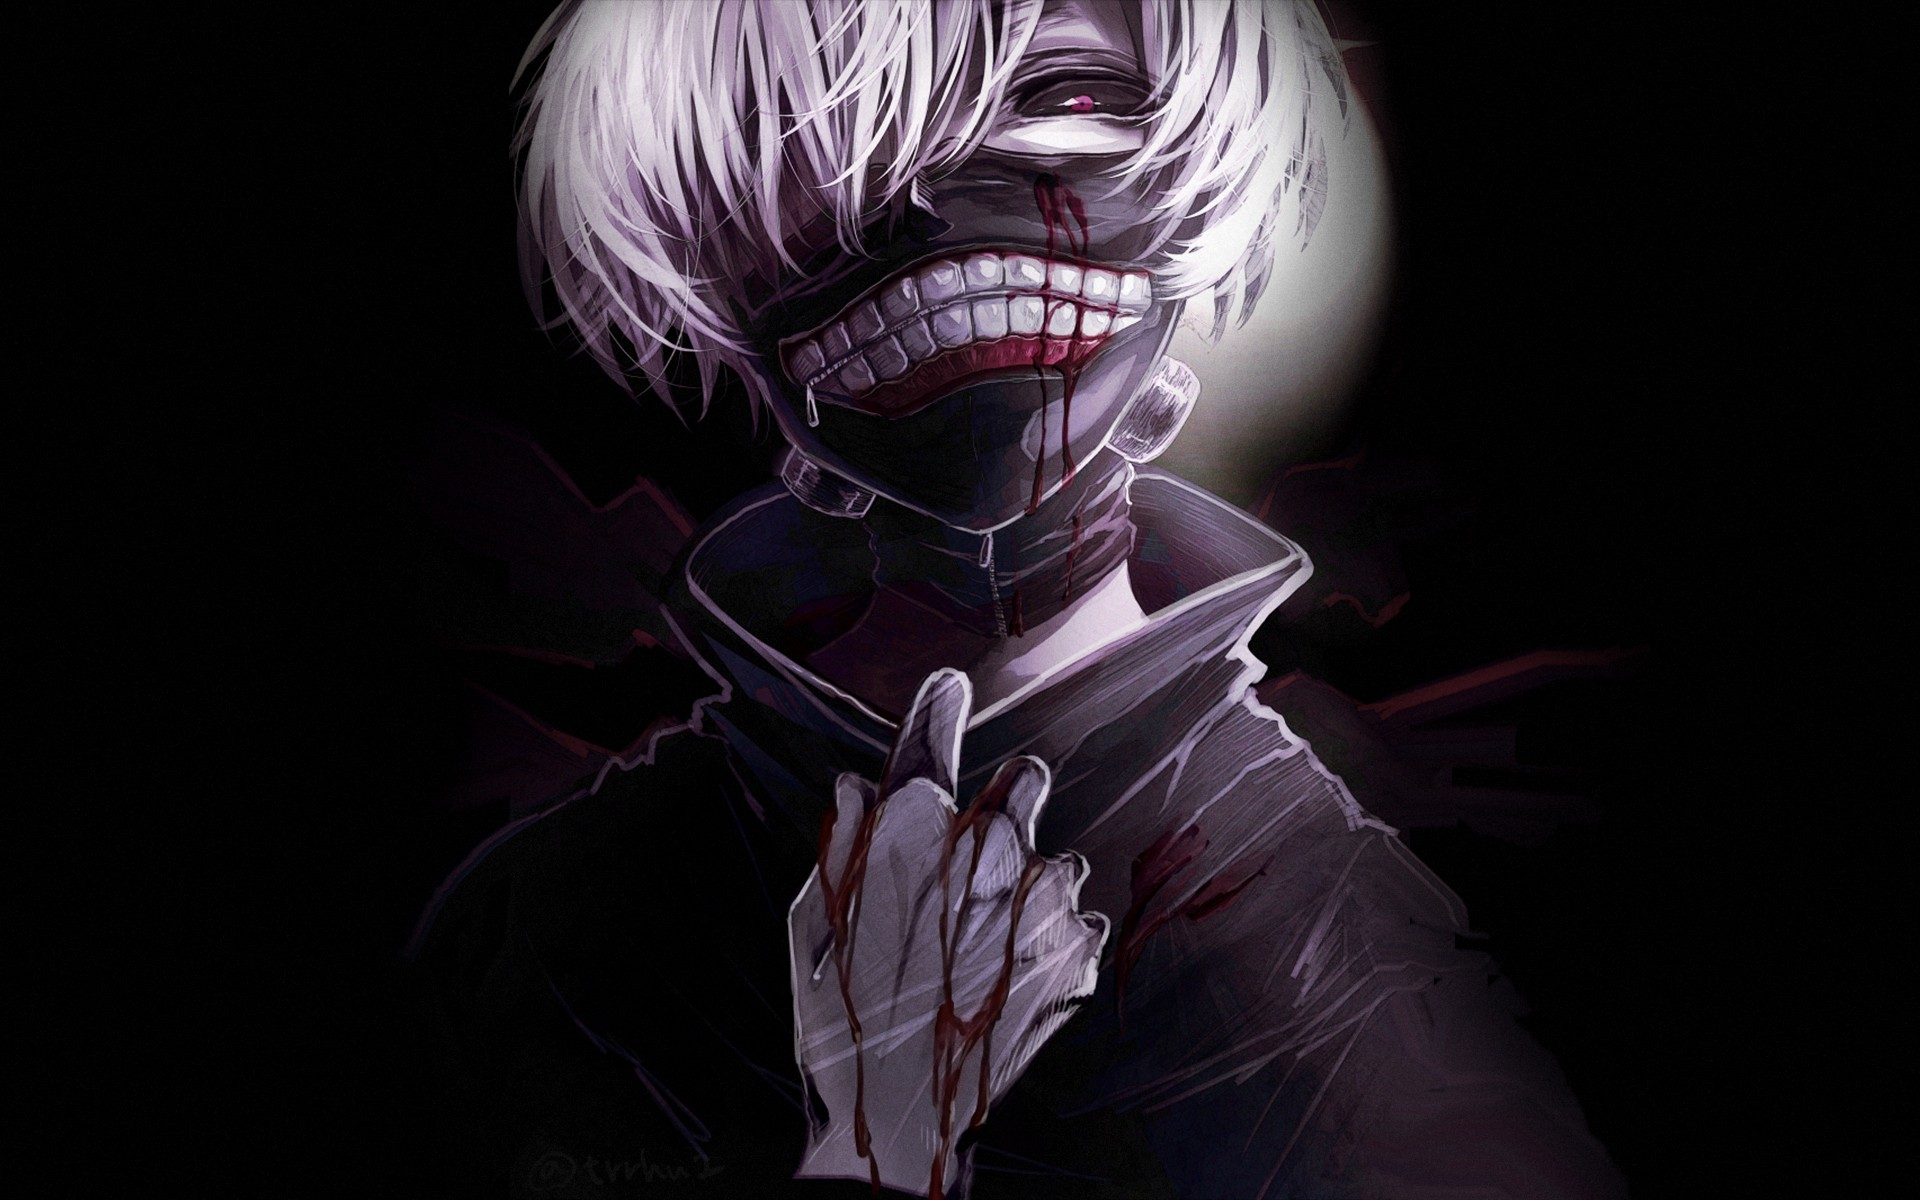 Simple Wallpaper High Quality Tokyo Ghoul - 222973-gorgerous-tokyo-ghoul-wallpaper-hd-1920x1200-for-android  Best Photo Reference_274025.jpg